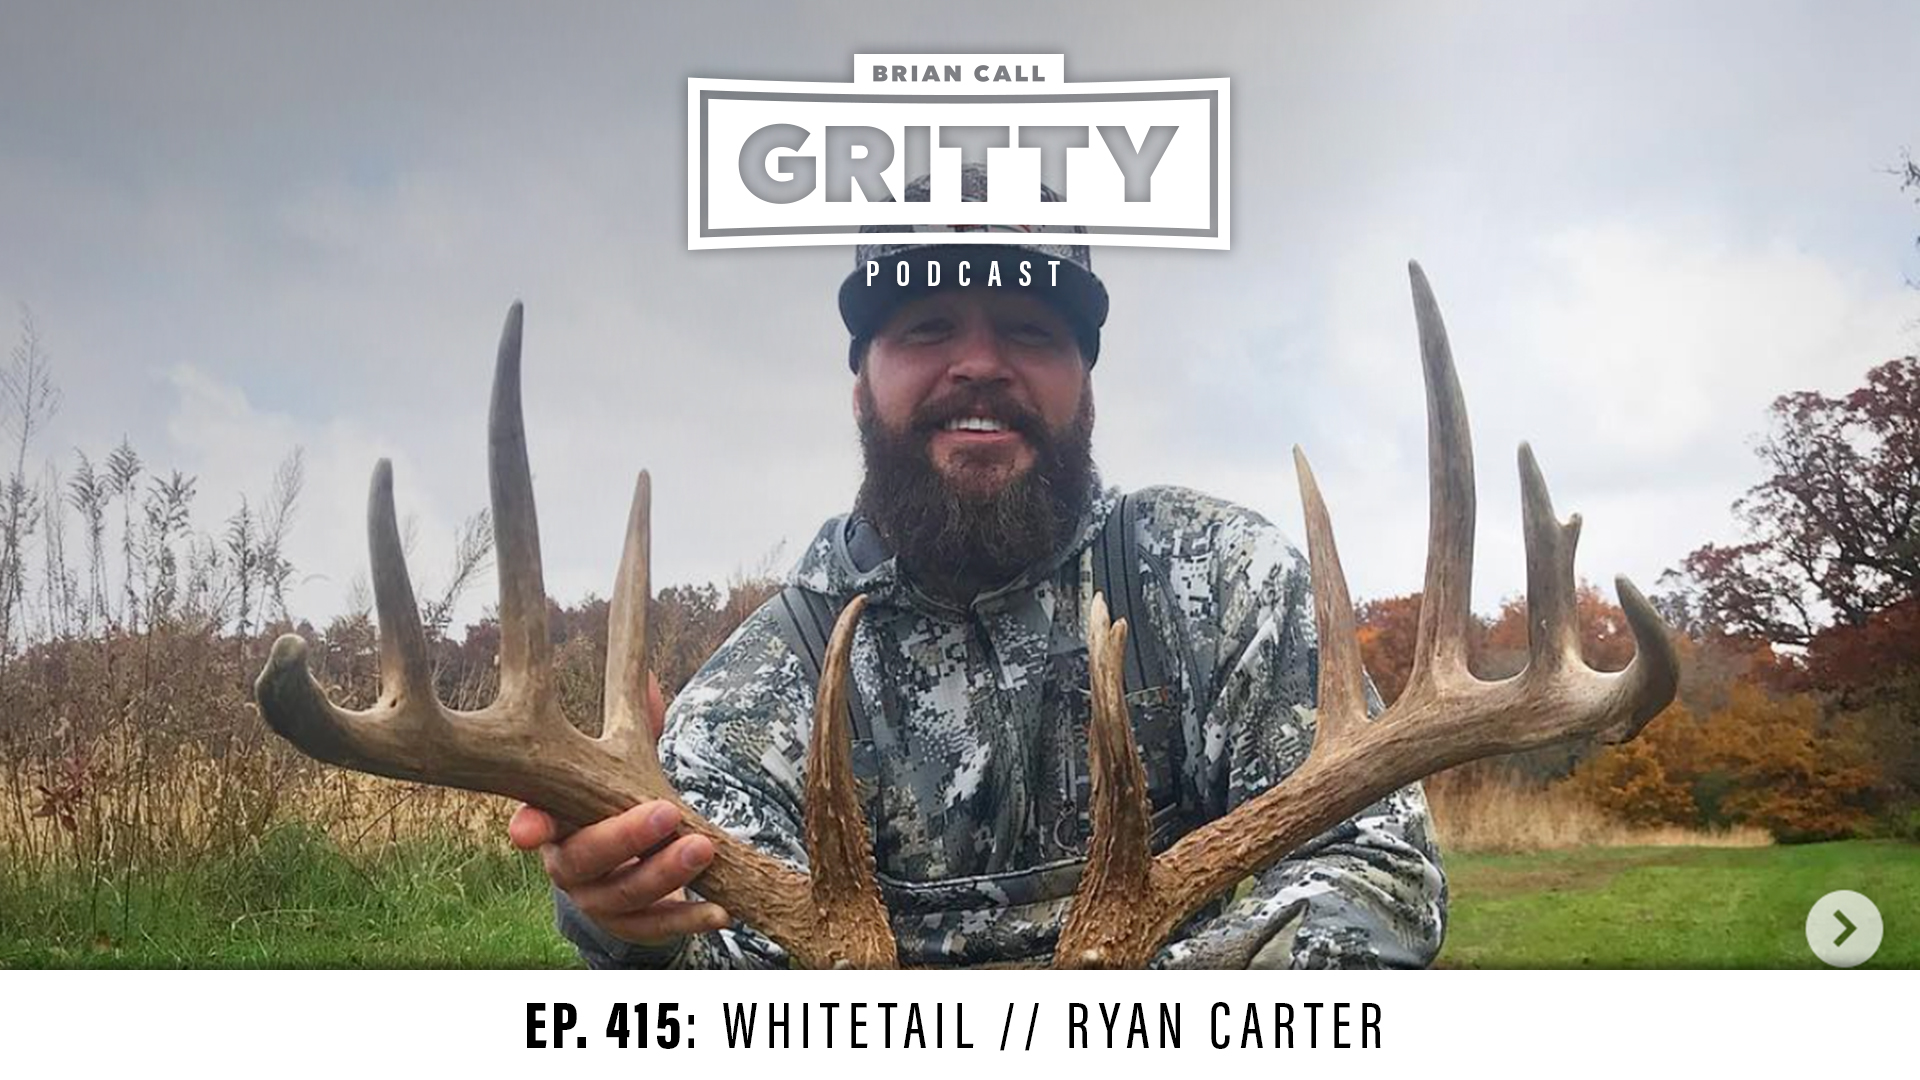 EP. 415: WHITETAIL // RYAN CARTER